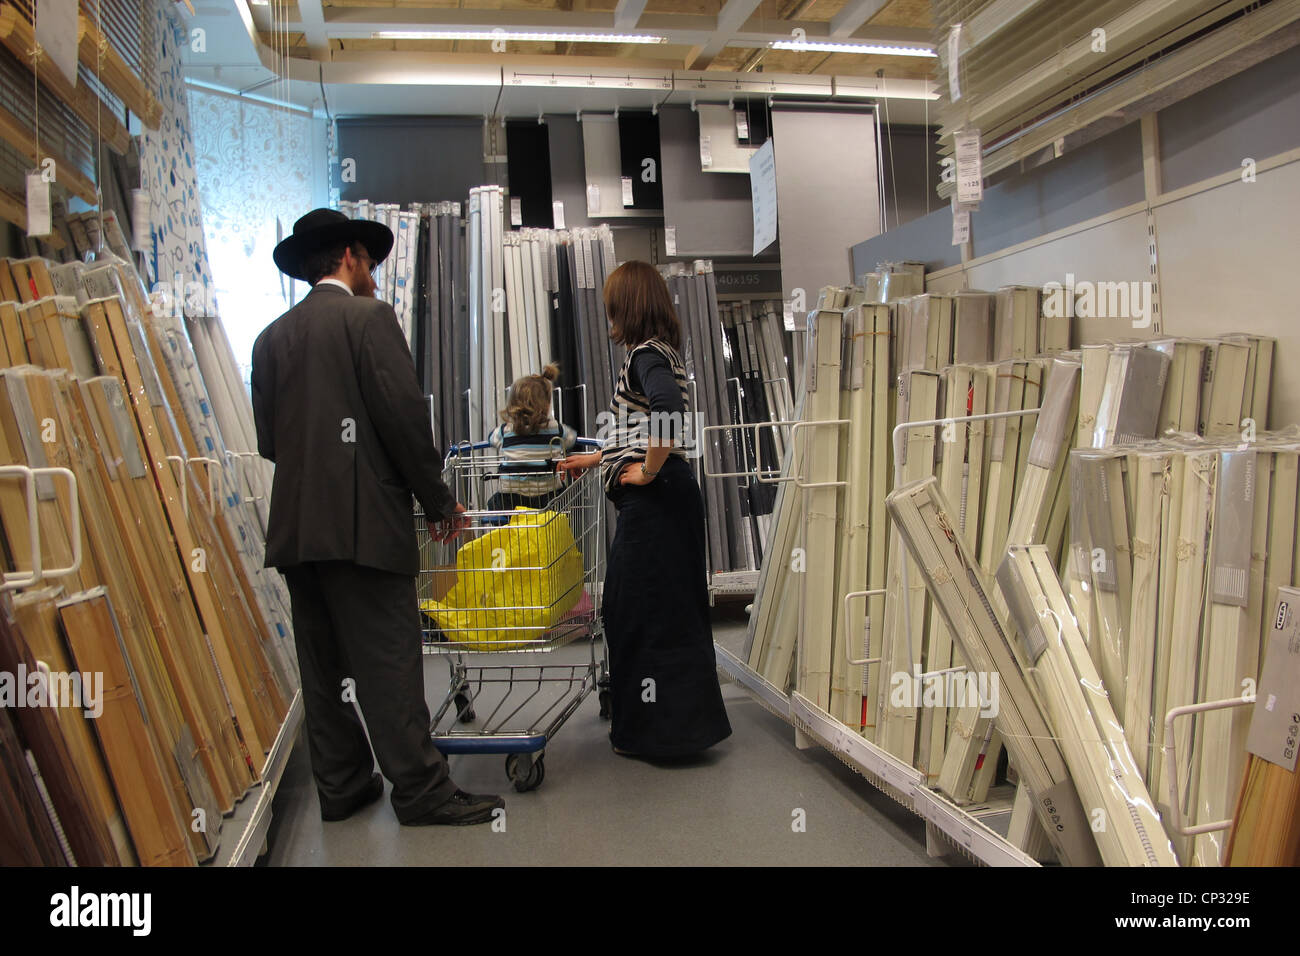 Merveilleux An Ultra Orthodox Jewish Family In Ikea Furniture Retailer Store In Israel